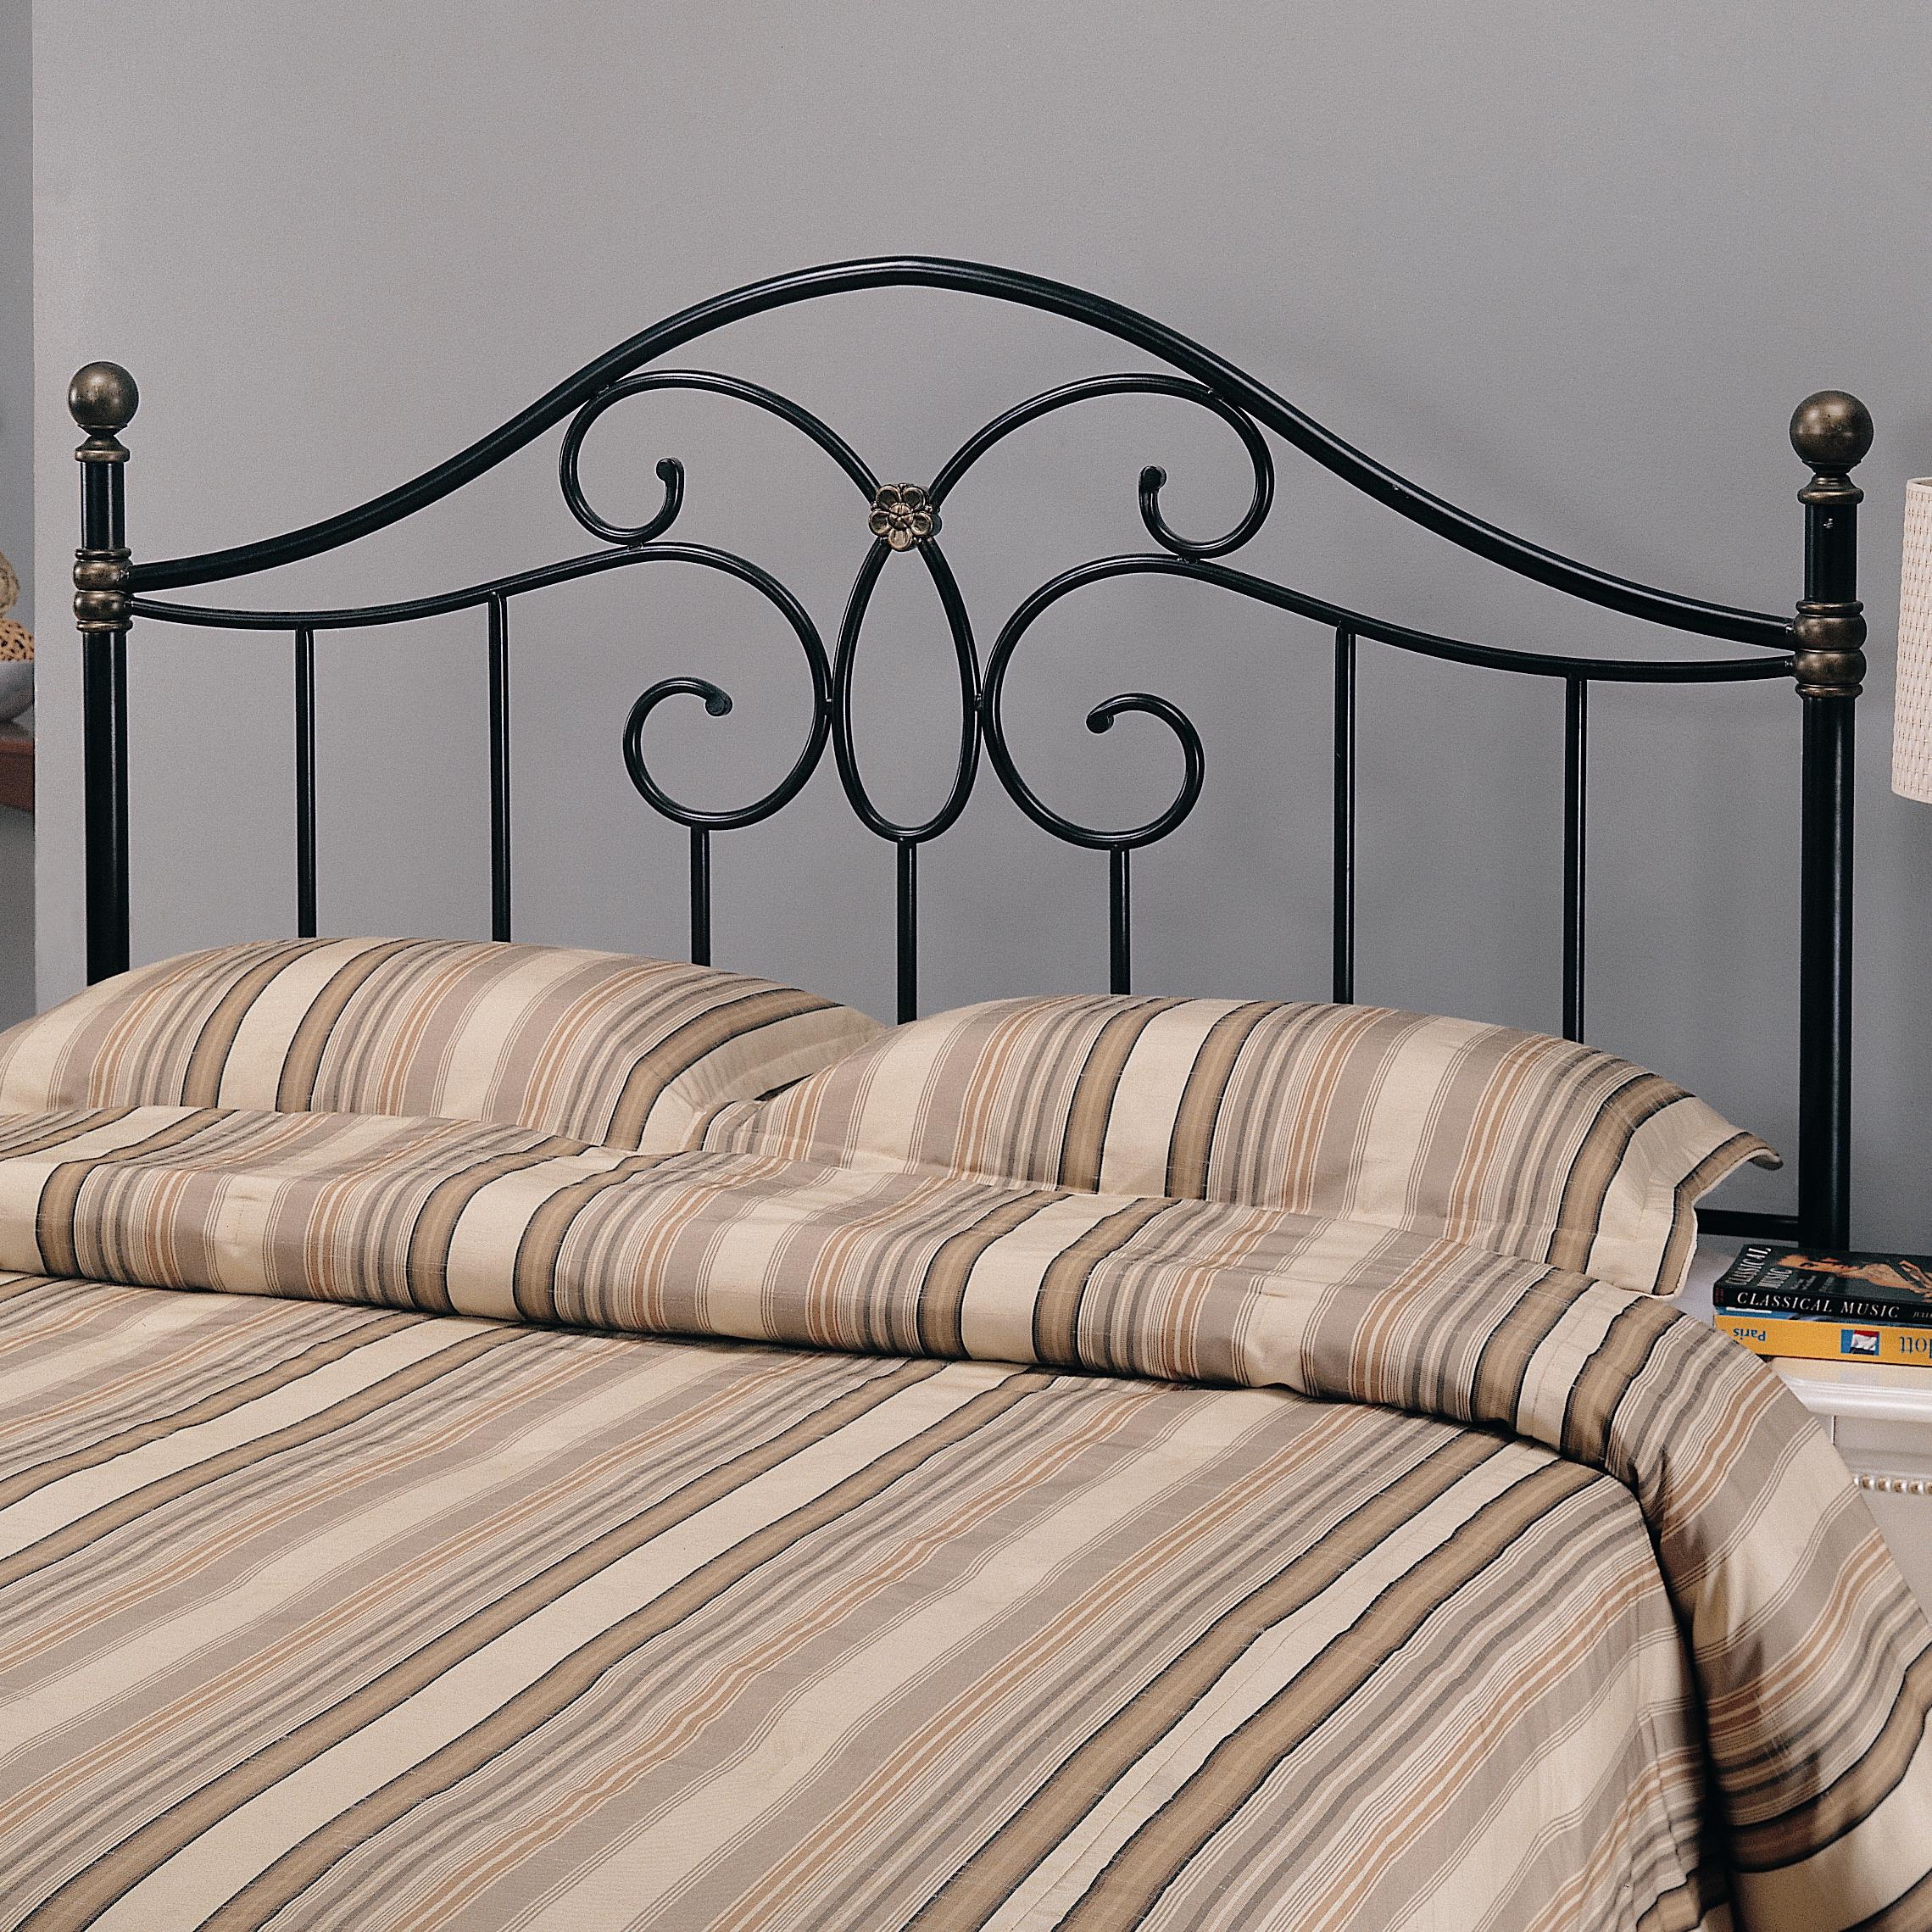 Coaster Iron Beds and Headboards 300182QF Full Queen Black Metal     Coaster Iron Beds and Headboards Full Queen Metal Headboard   Item Number   300182QF